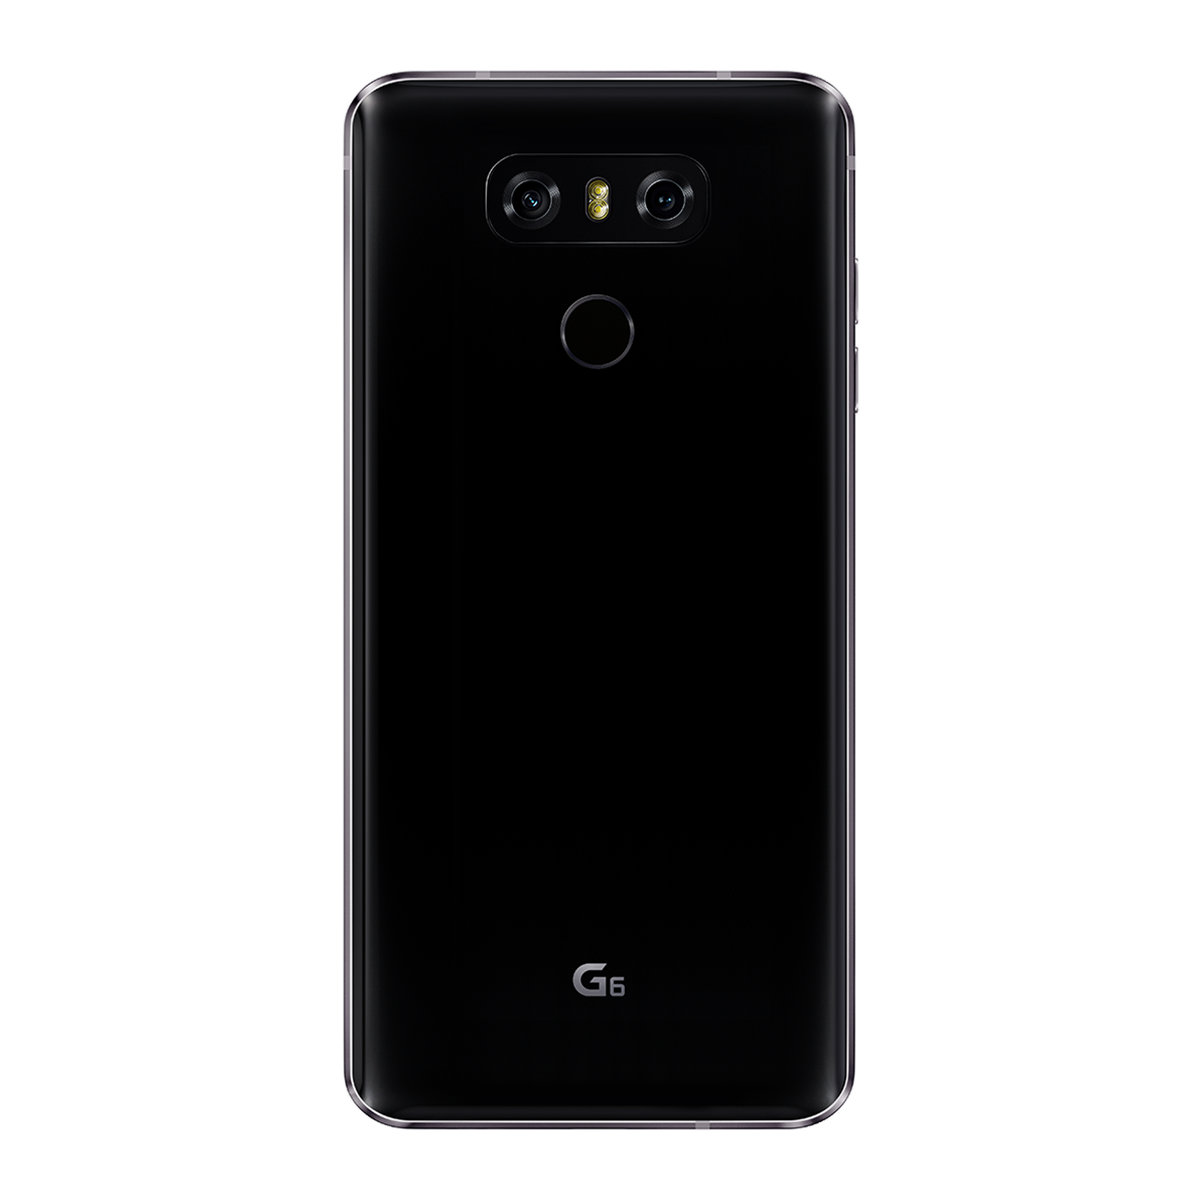 lg g6 release date specs price features review buy lg g6